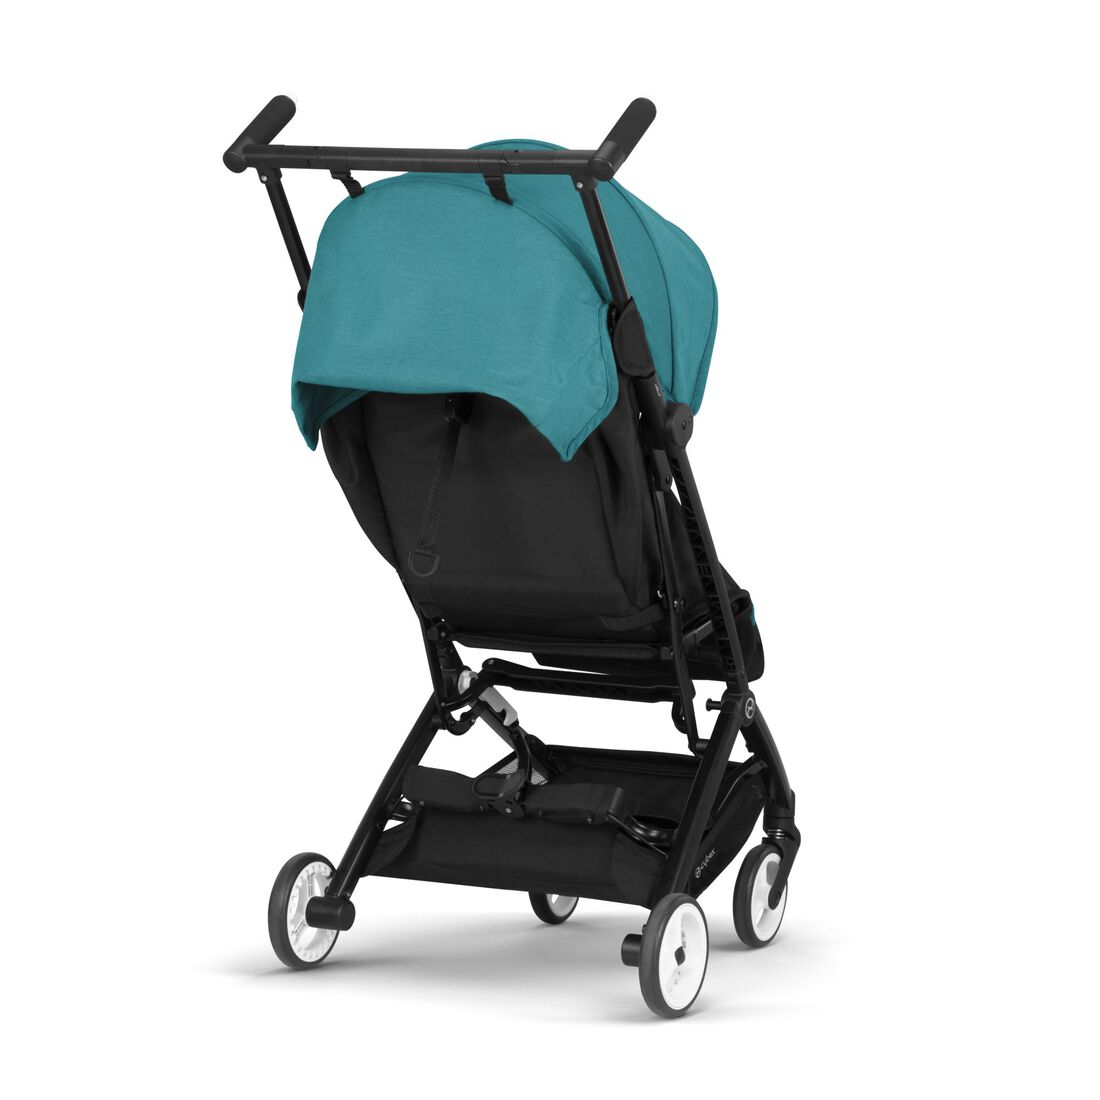 CYBEX Libelle - River Blue in River Blue large Bild 5